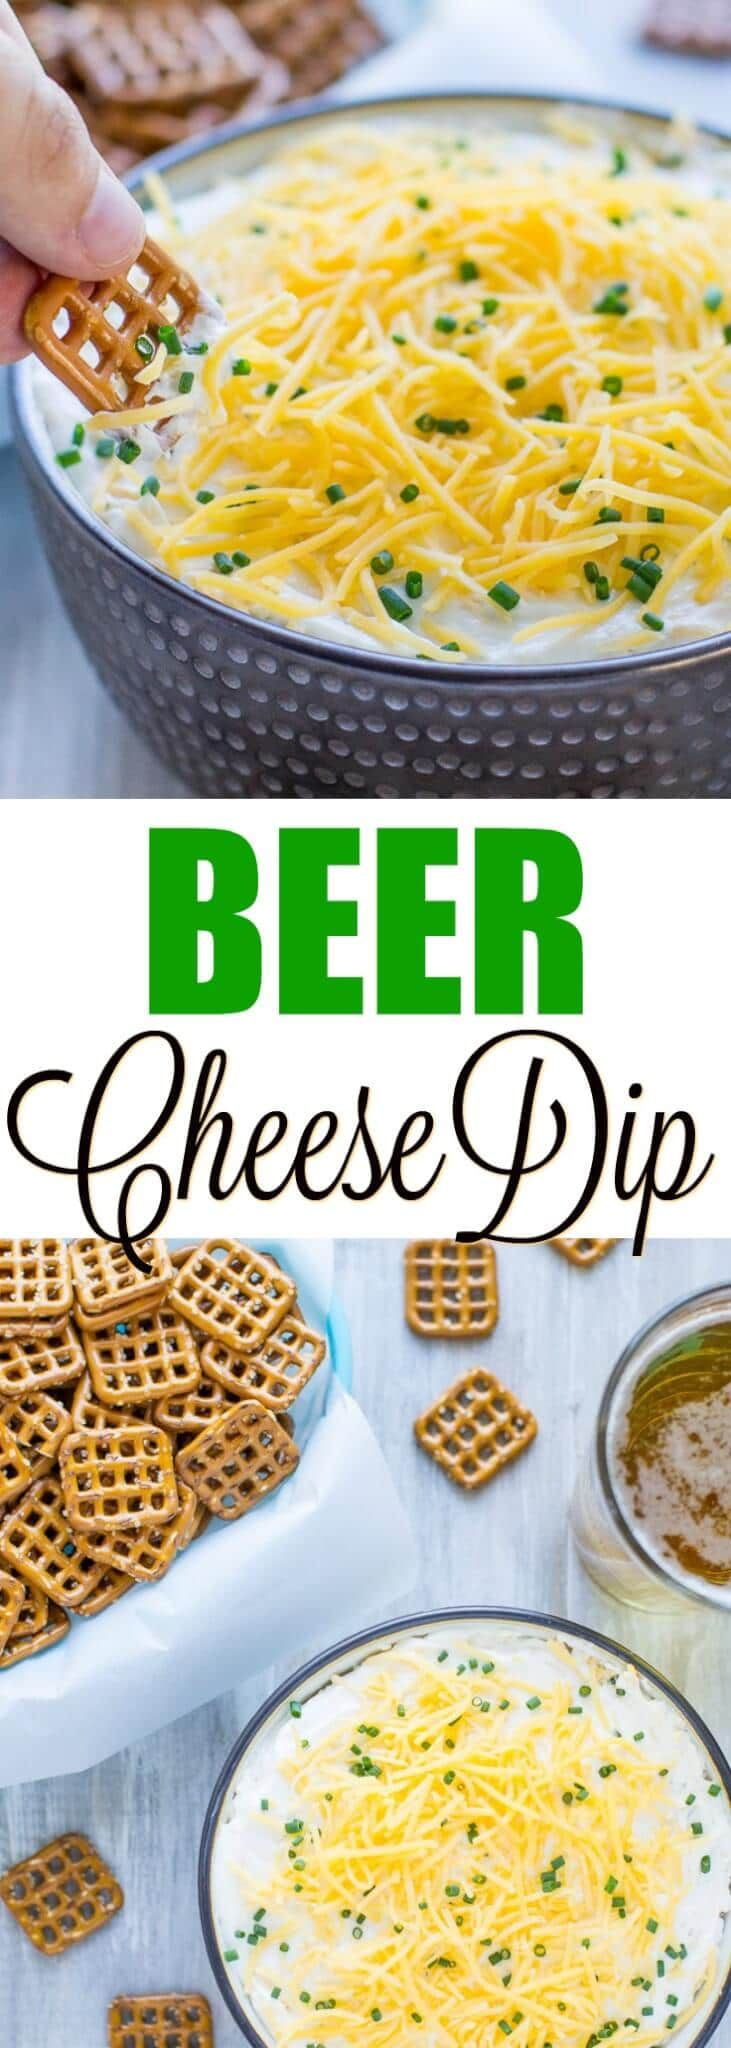 Beer Cheese Dip Recipe | Culinary Hill